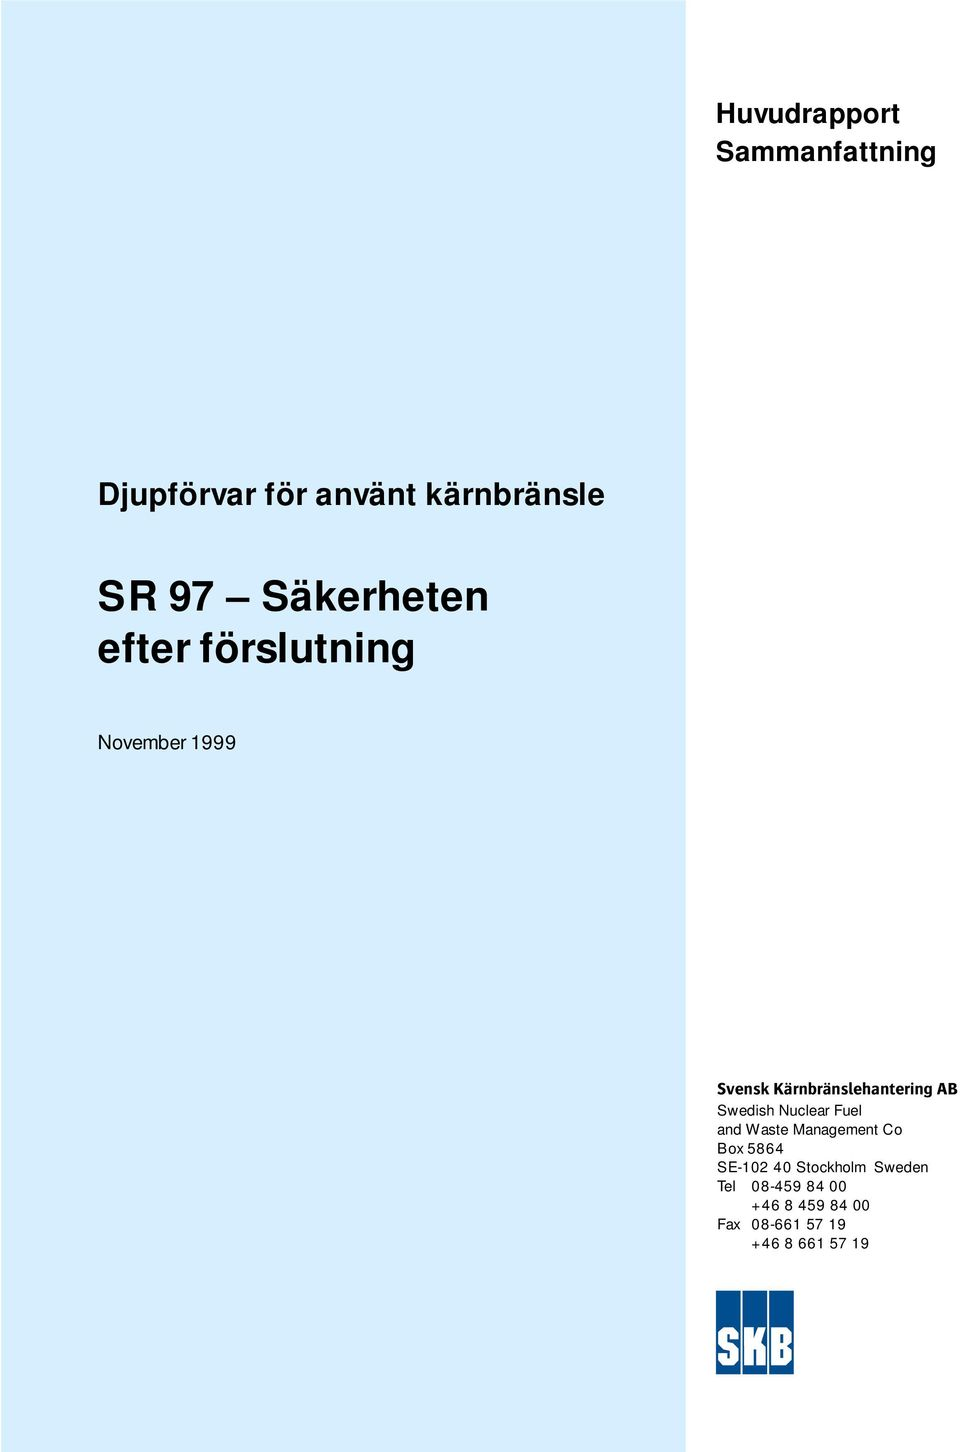 AB Swedish Nuclear Fuel and Waste Management Co Box 5864 SE-102 40